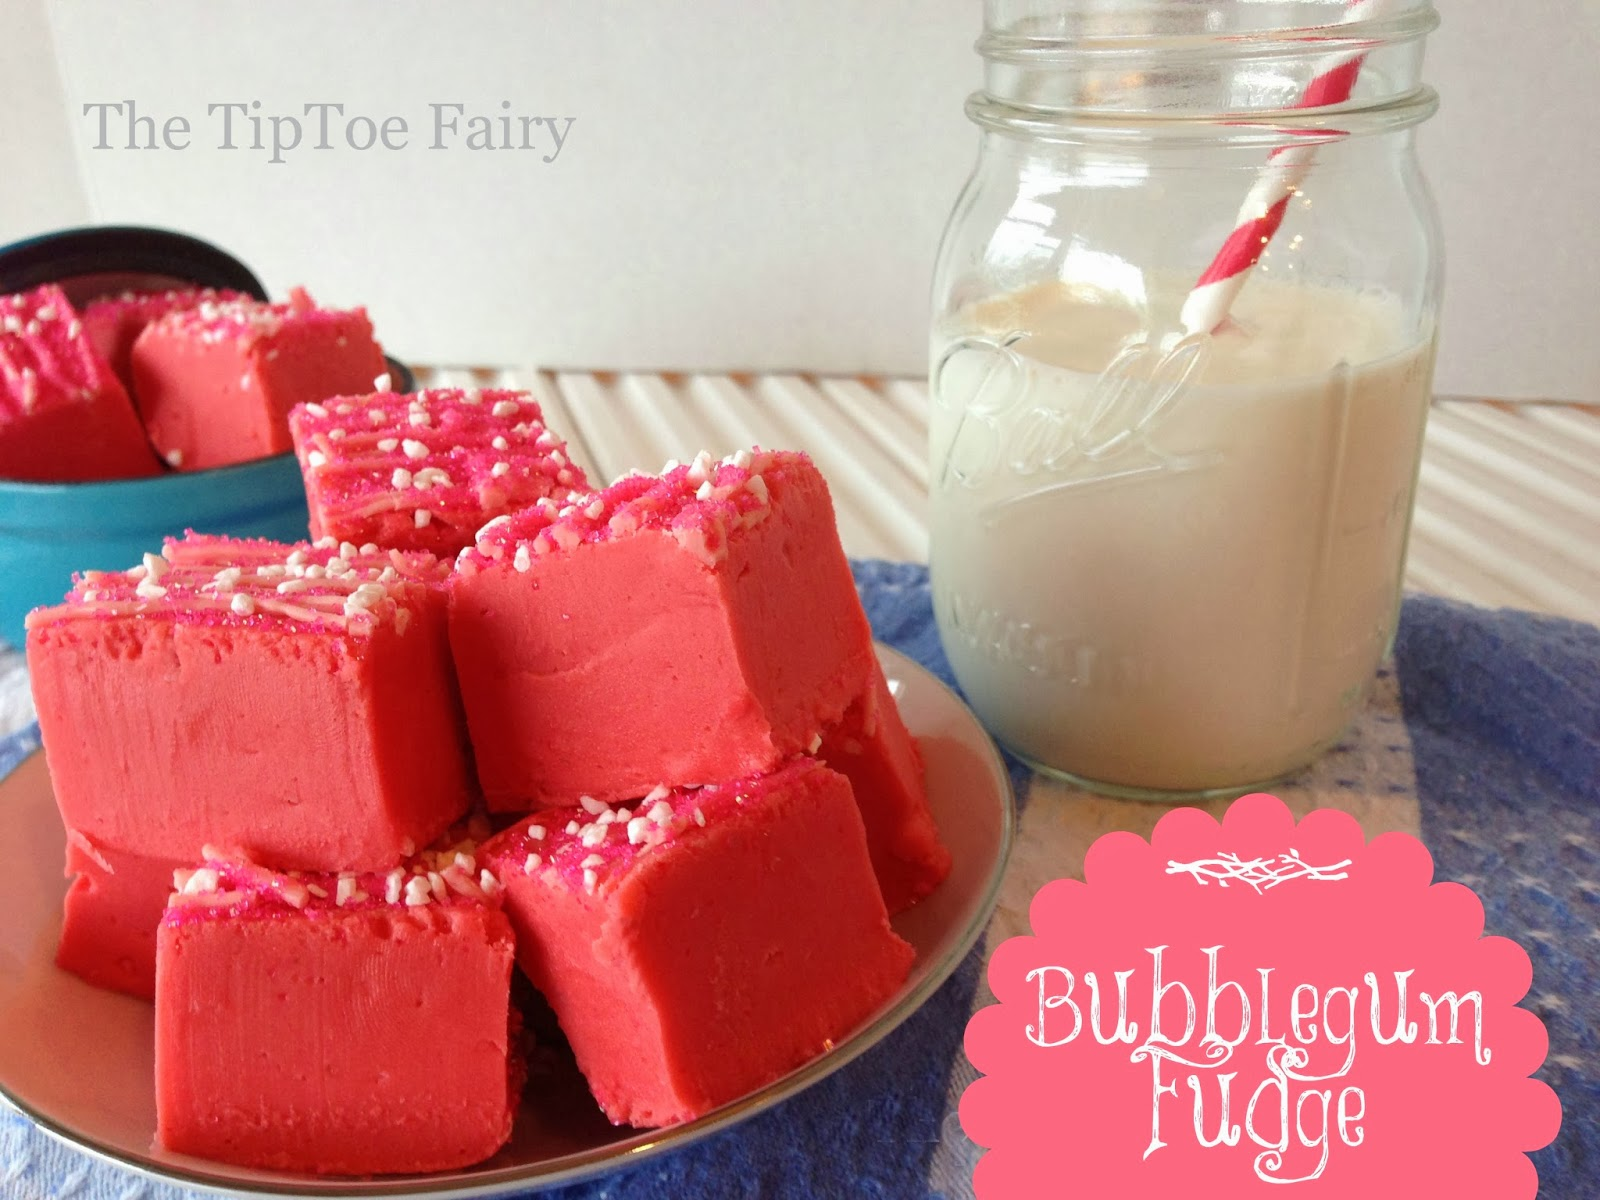 Bubblegum Fudge